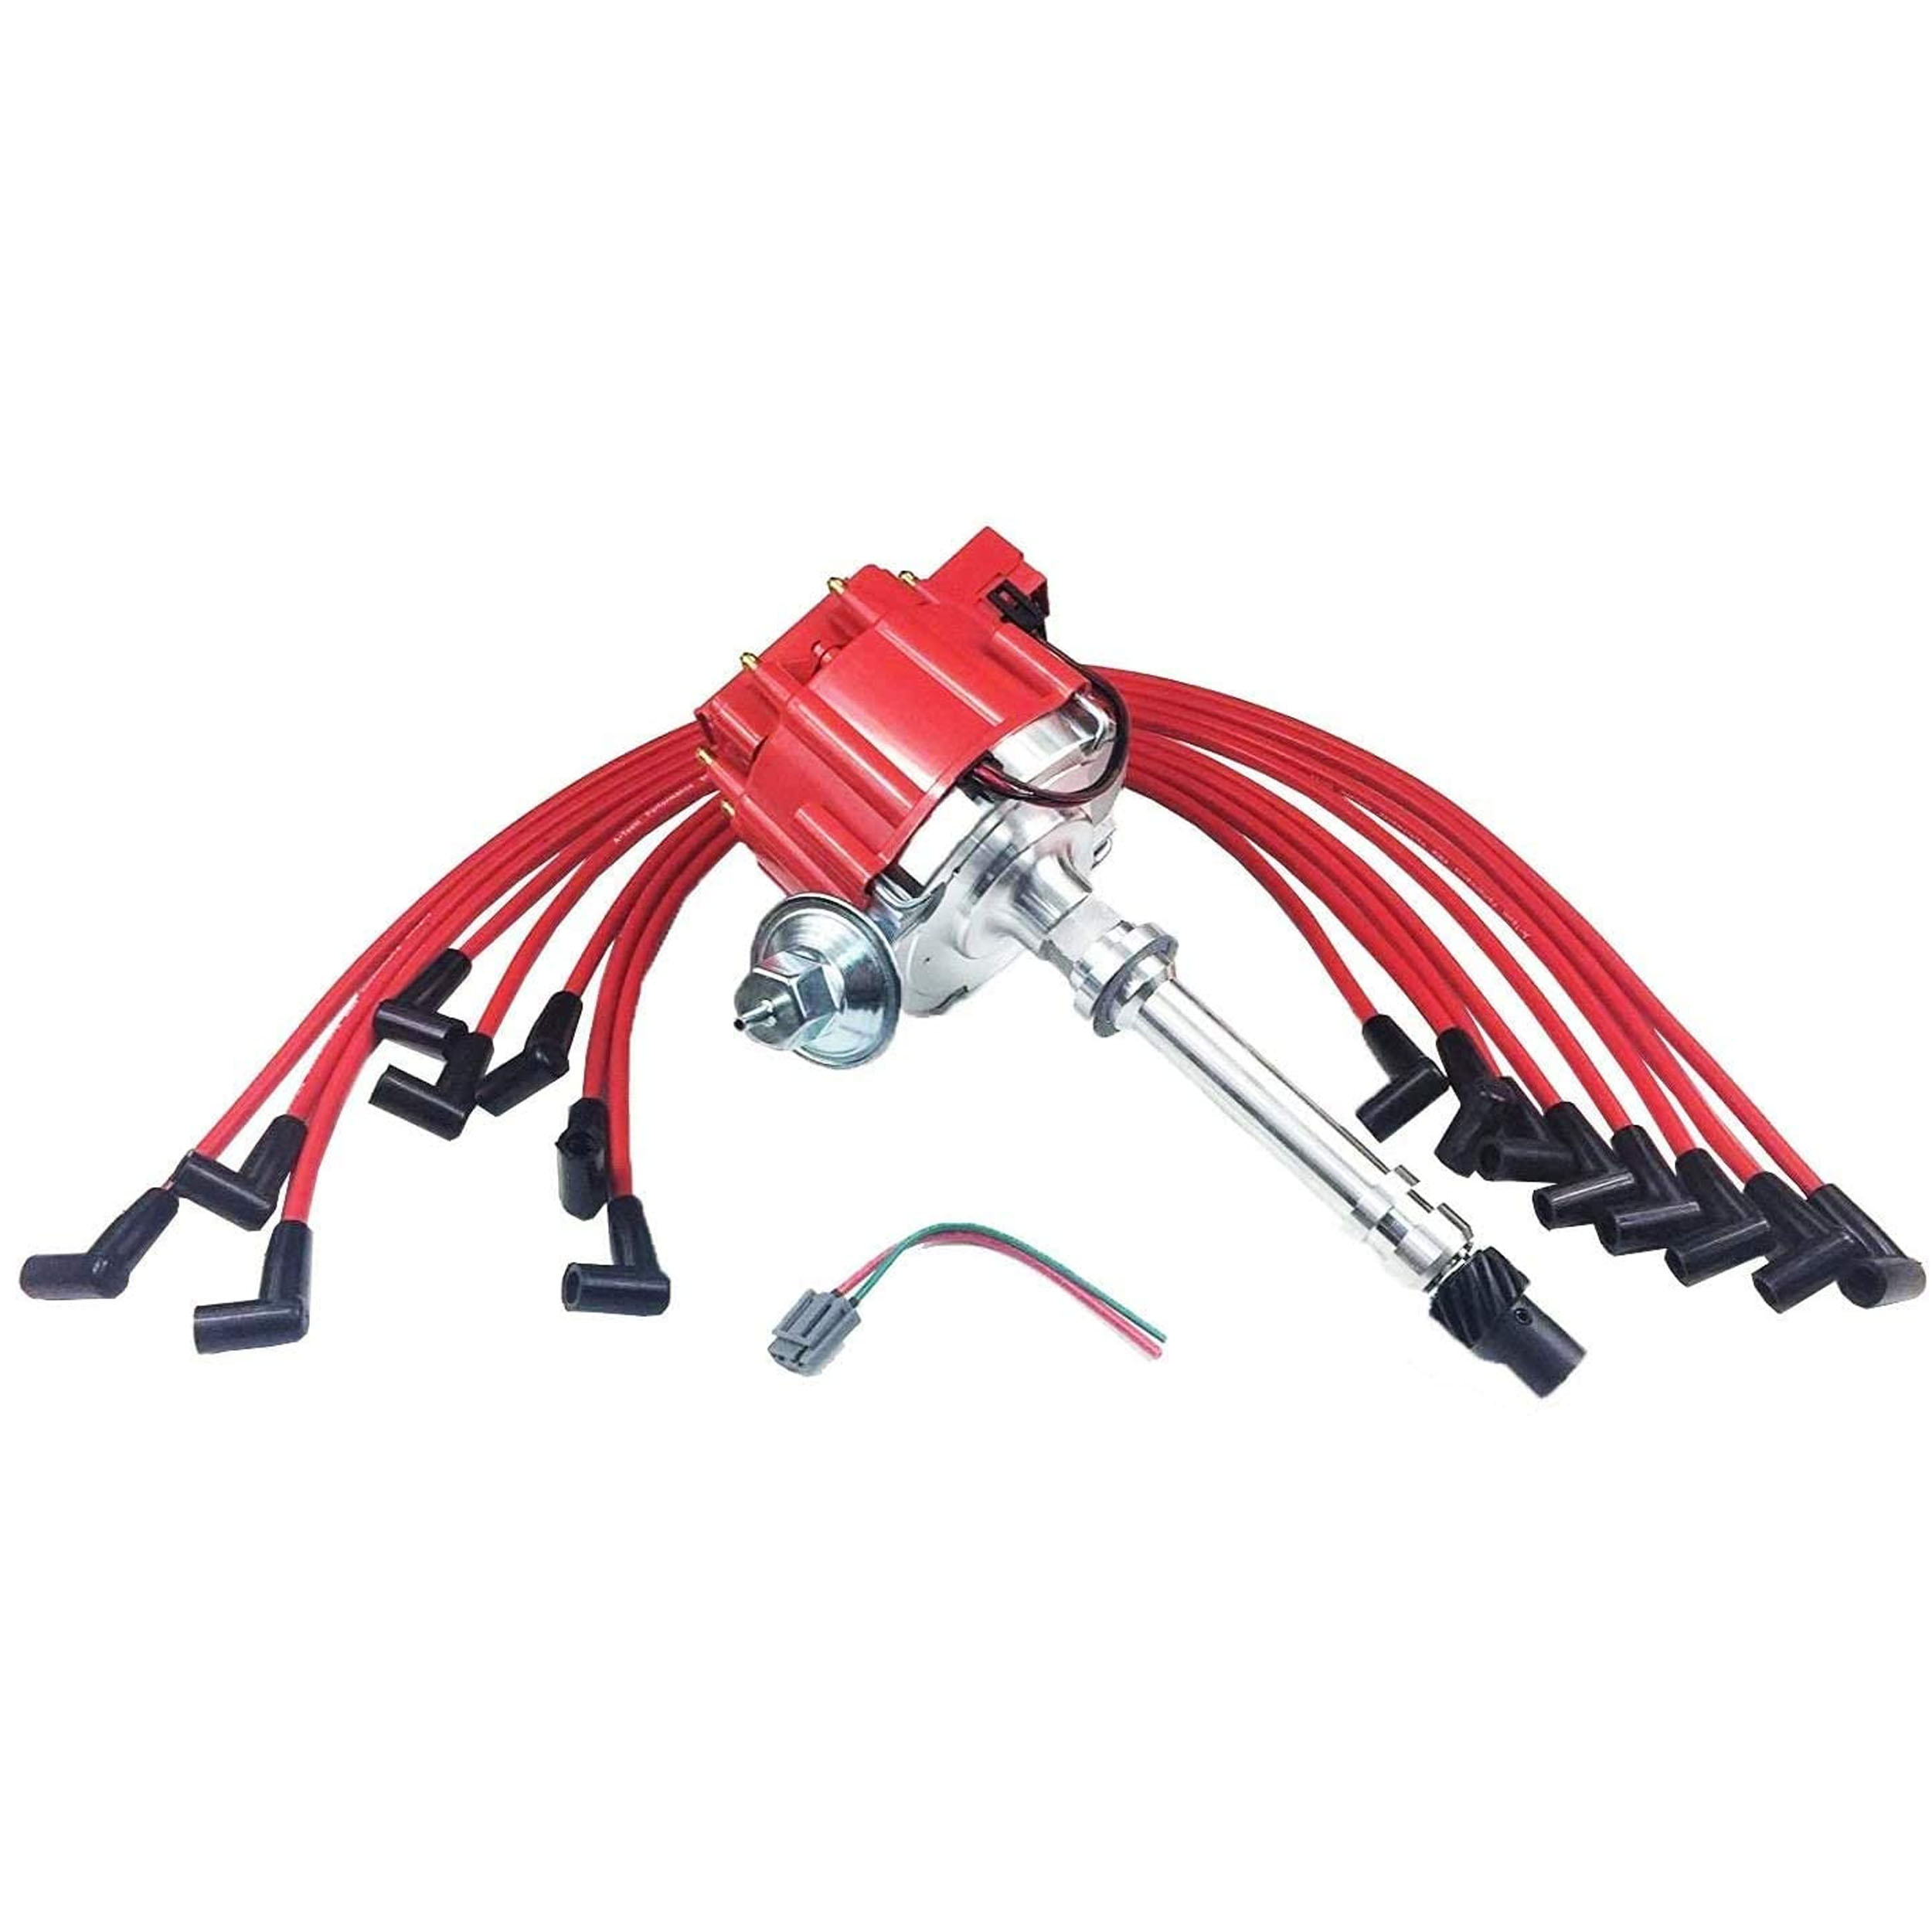 A-Team Performance HEI Distributor Red Cap and 8mm Spark Plug Wires Set  Under The Exhaust Compatible with SBC Small Block Chevrolet Chevy 283 350 | Chevy 350 Hei Wiring |  | Southwest Performance Parts